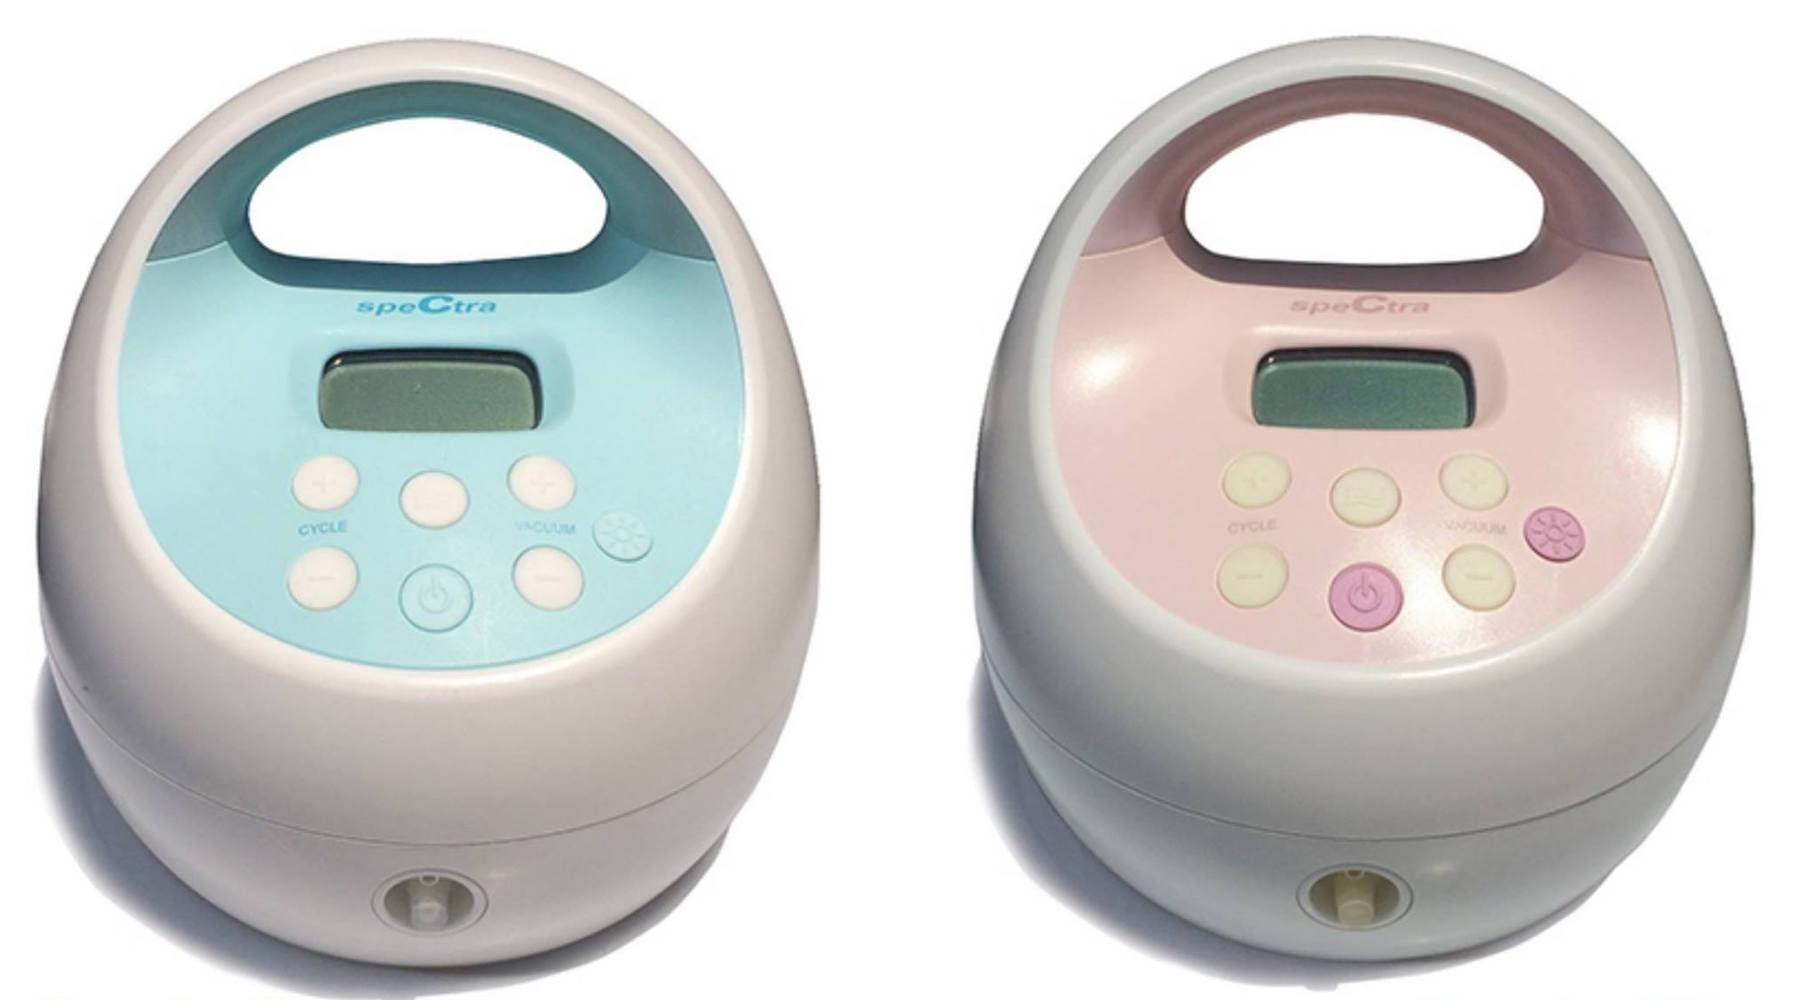 Spectra S1+ Double Breast Pump | best breast pumps in singapore